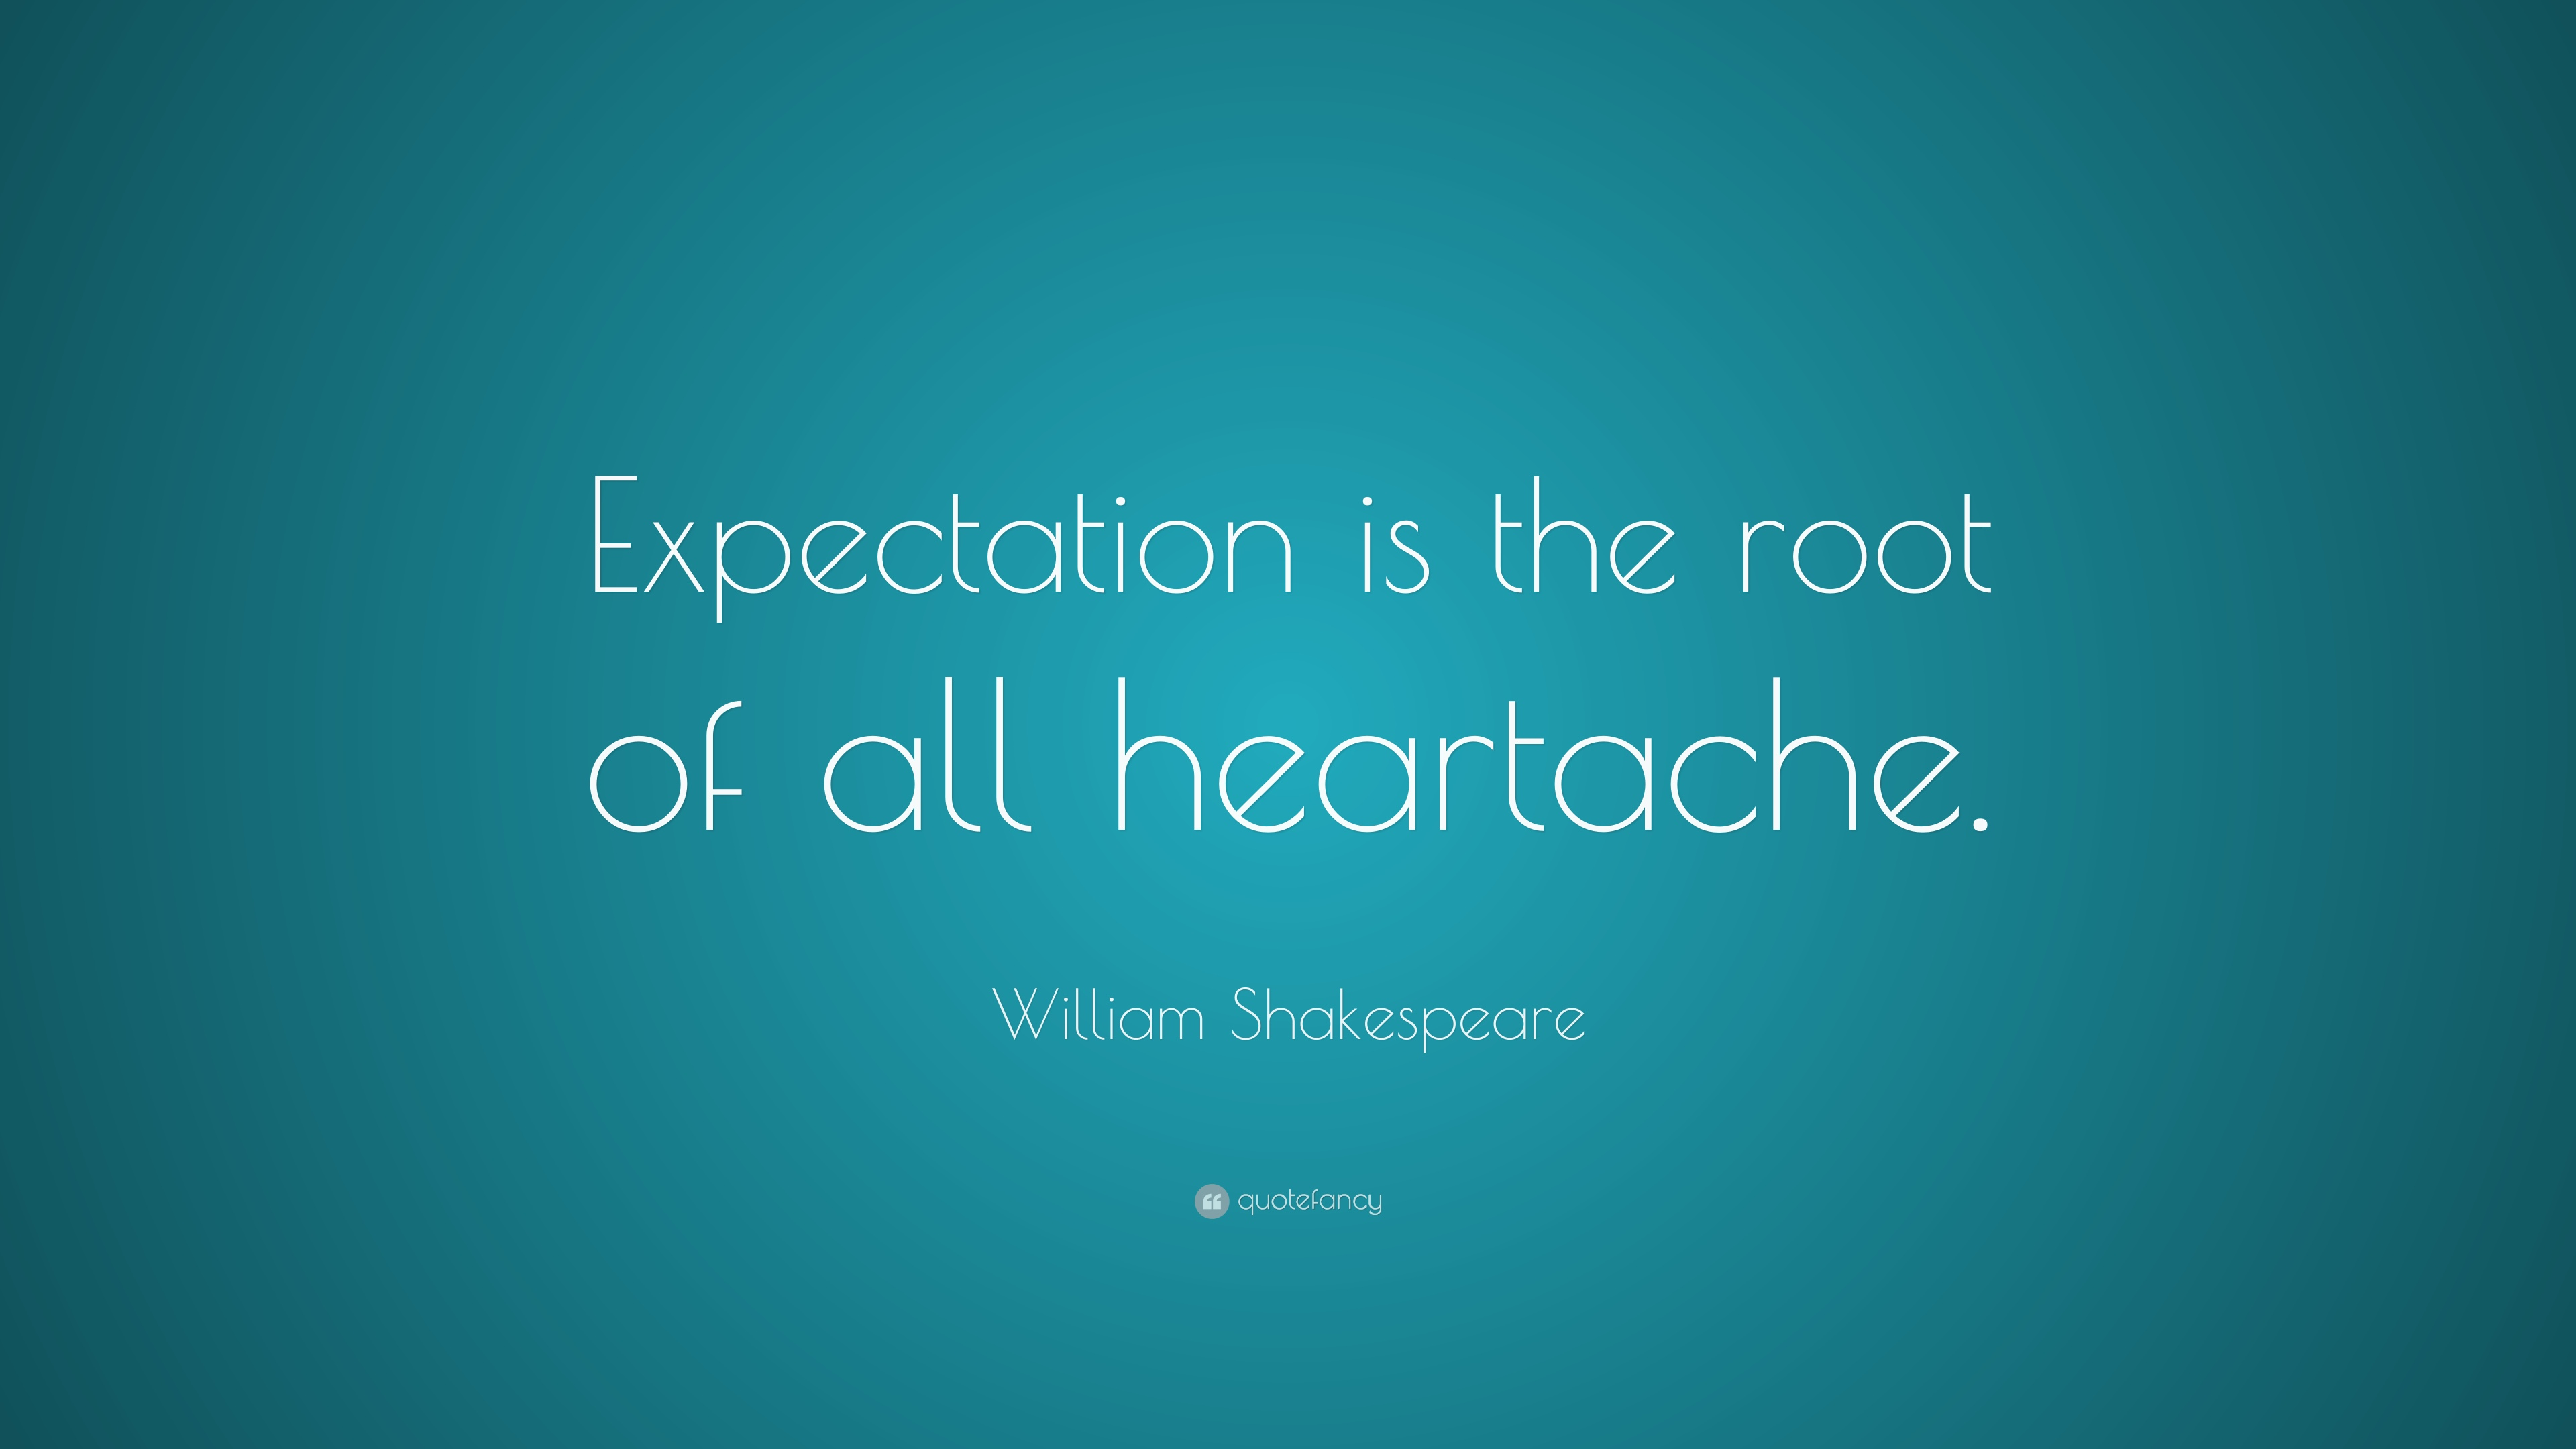 william shakespeare quote expectation is the root of all